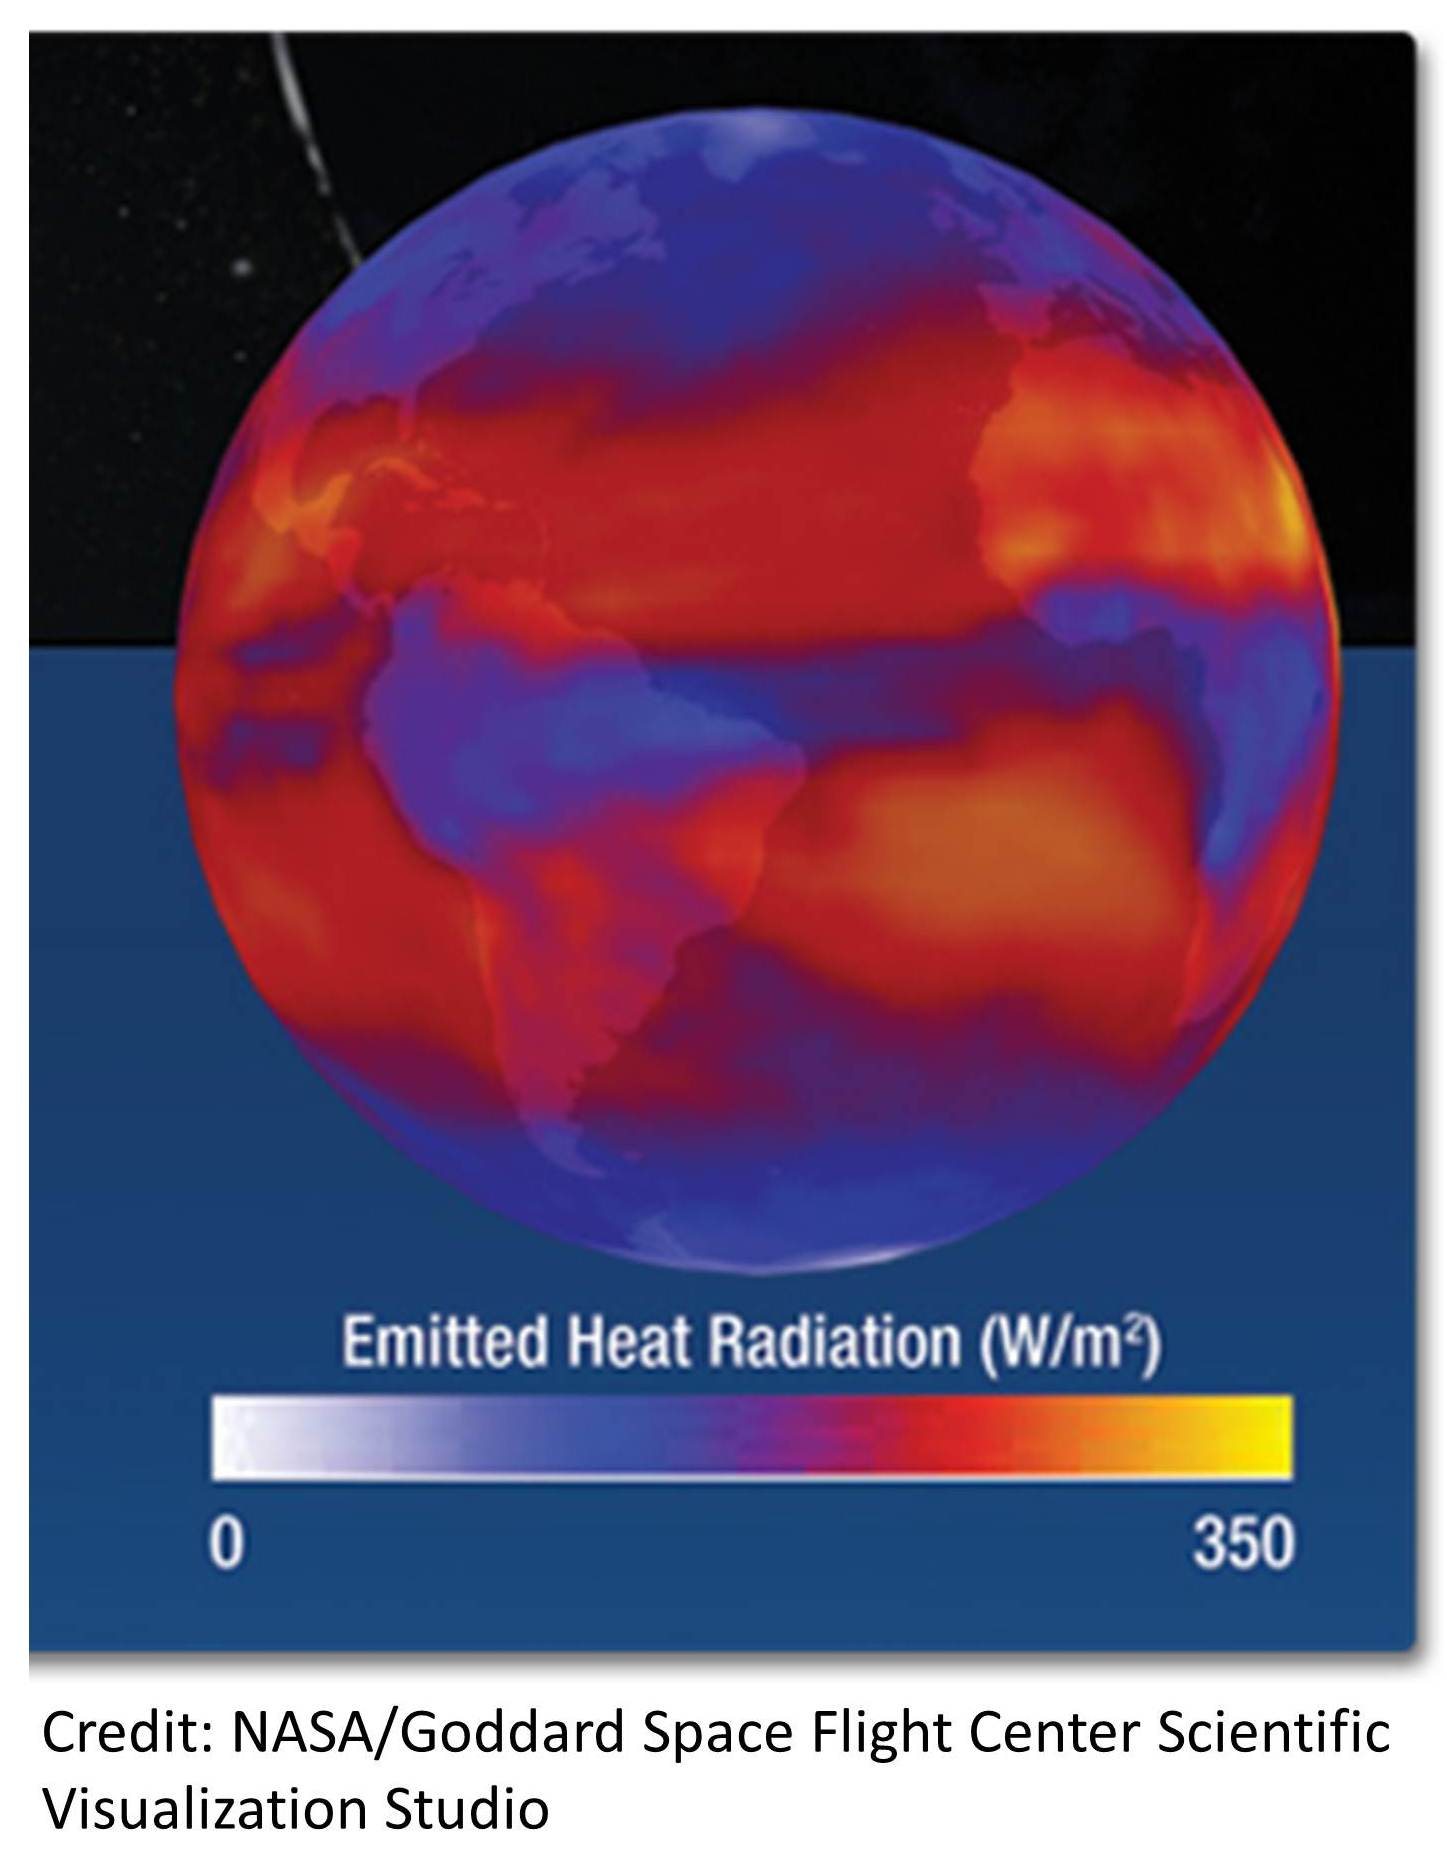 An image from NASA that illustrates the amount of terrestrial heat dissipated by Earth into the outer space